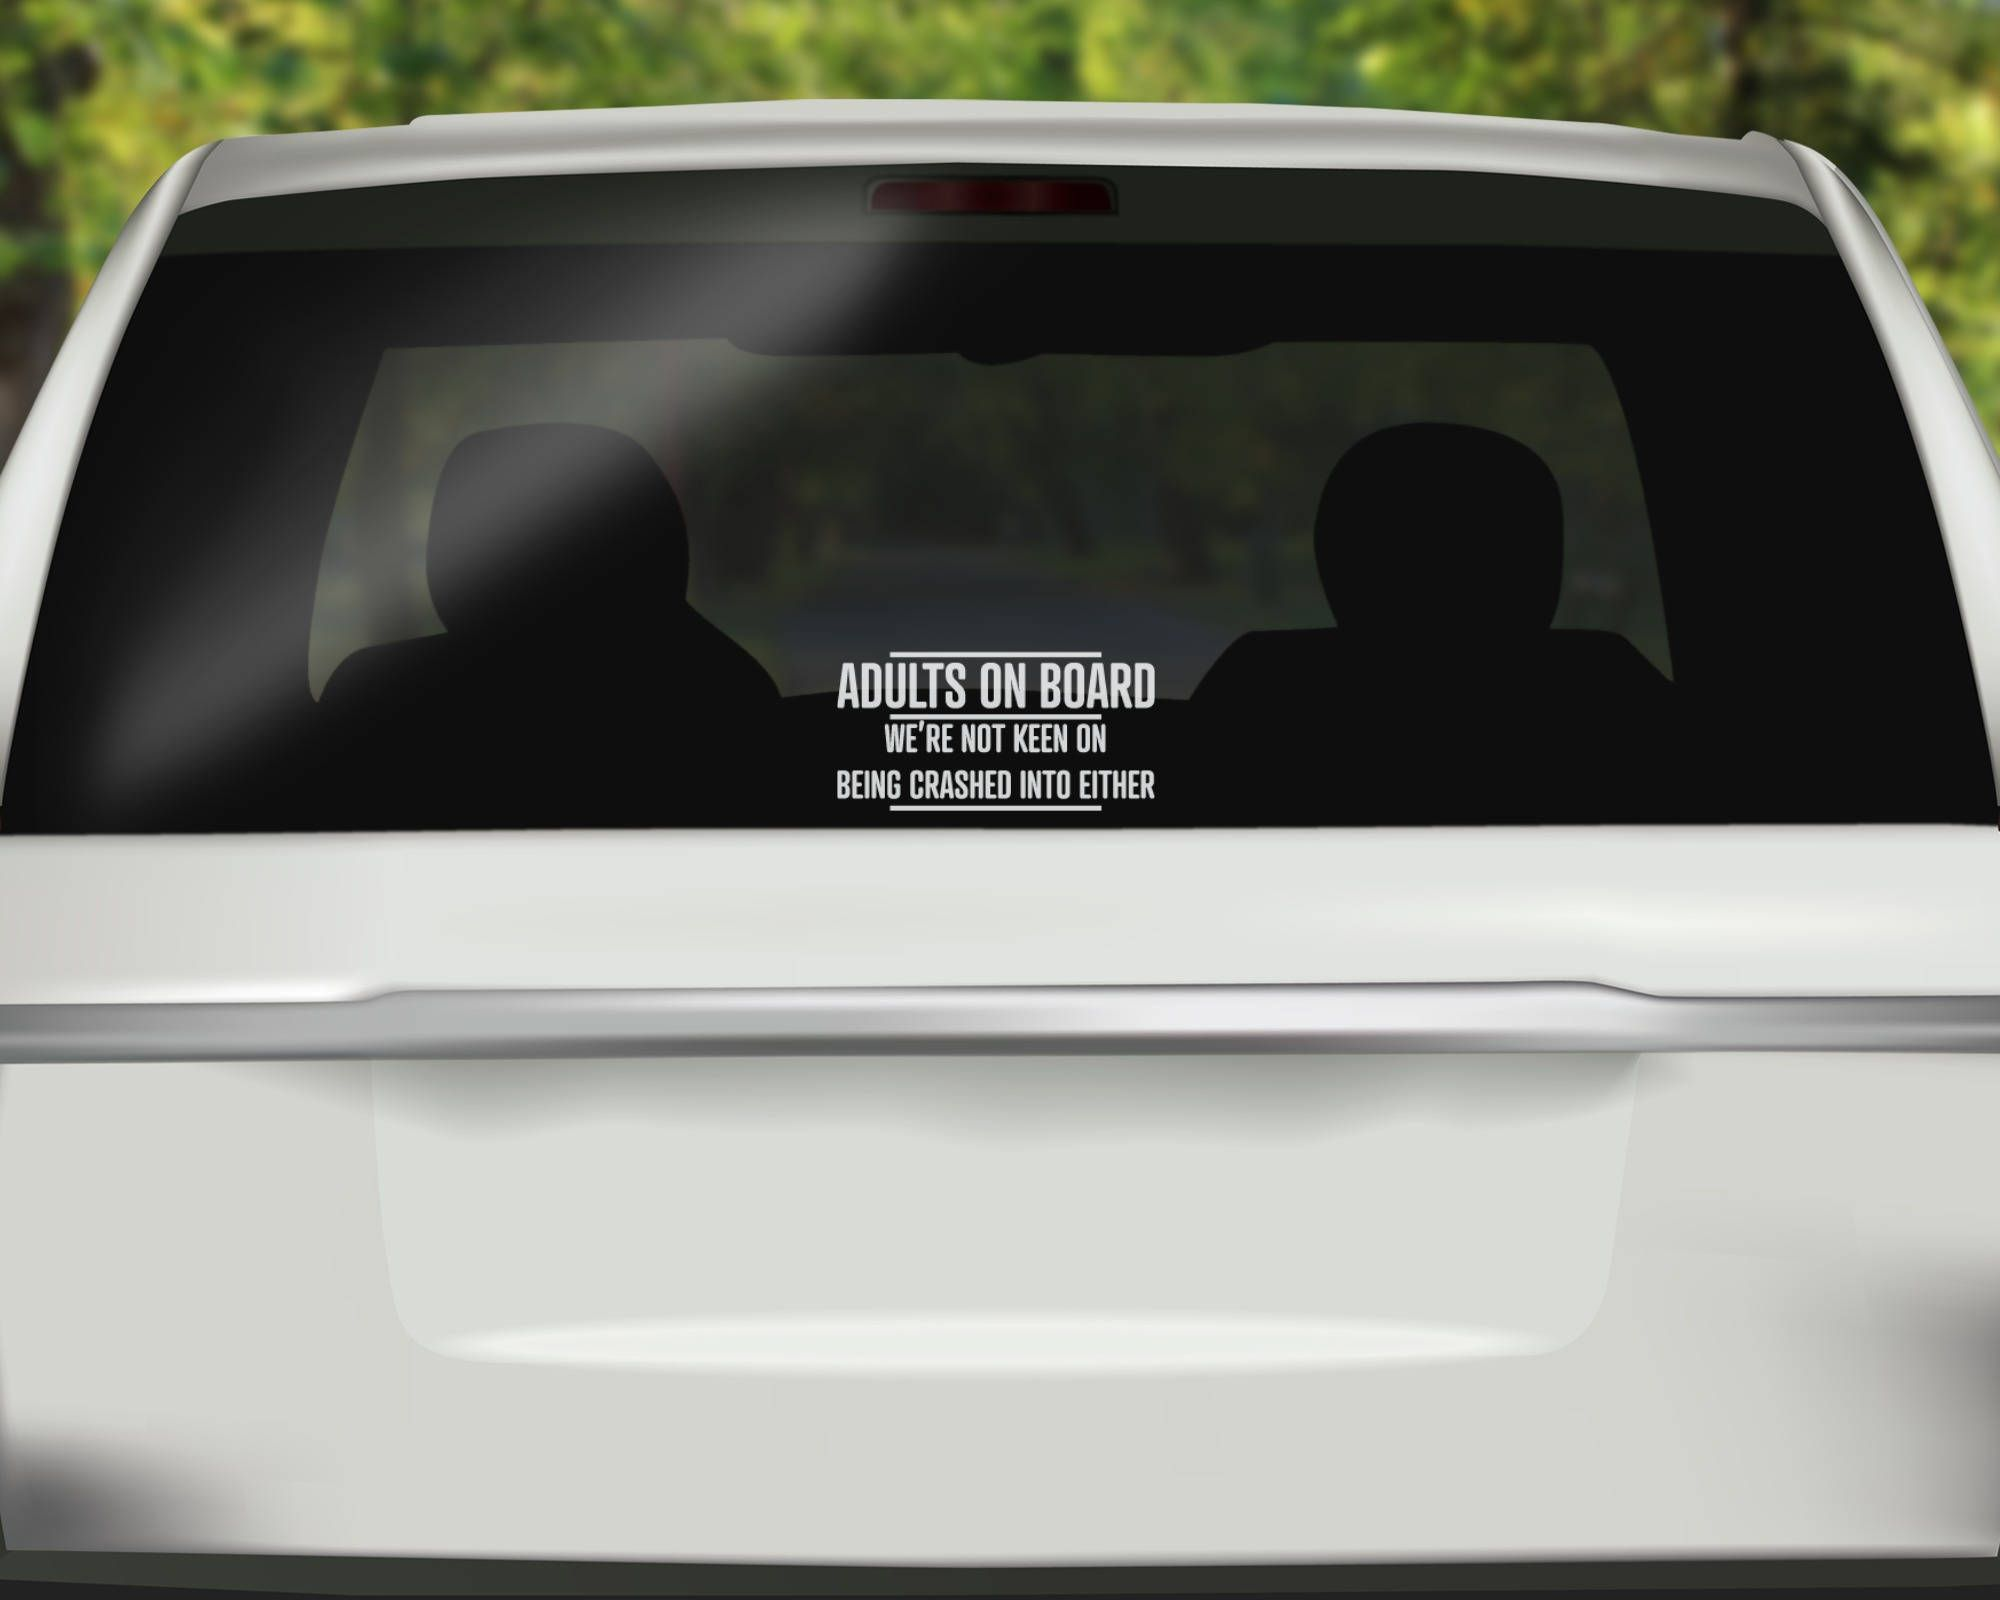 Adults On Board Decal Baby On Board Funny Car Decal Car - Funny decal stickers for carssticker car window picture more detailed picture about funny car